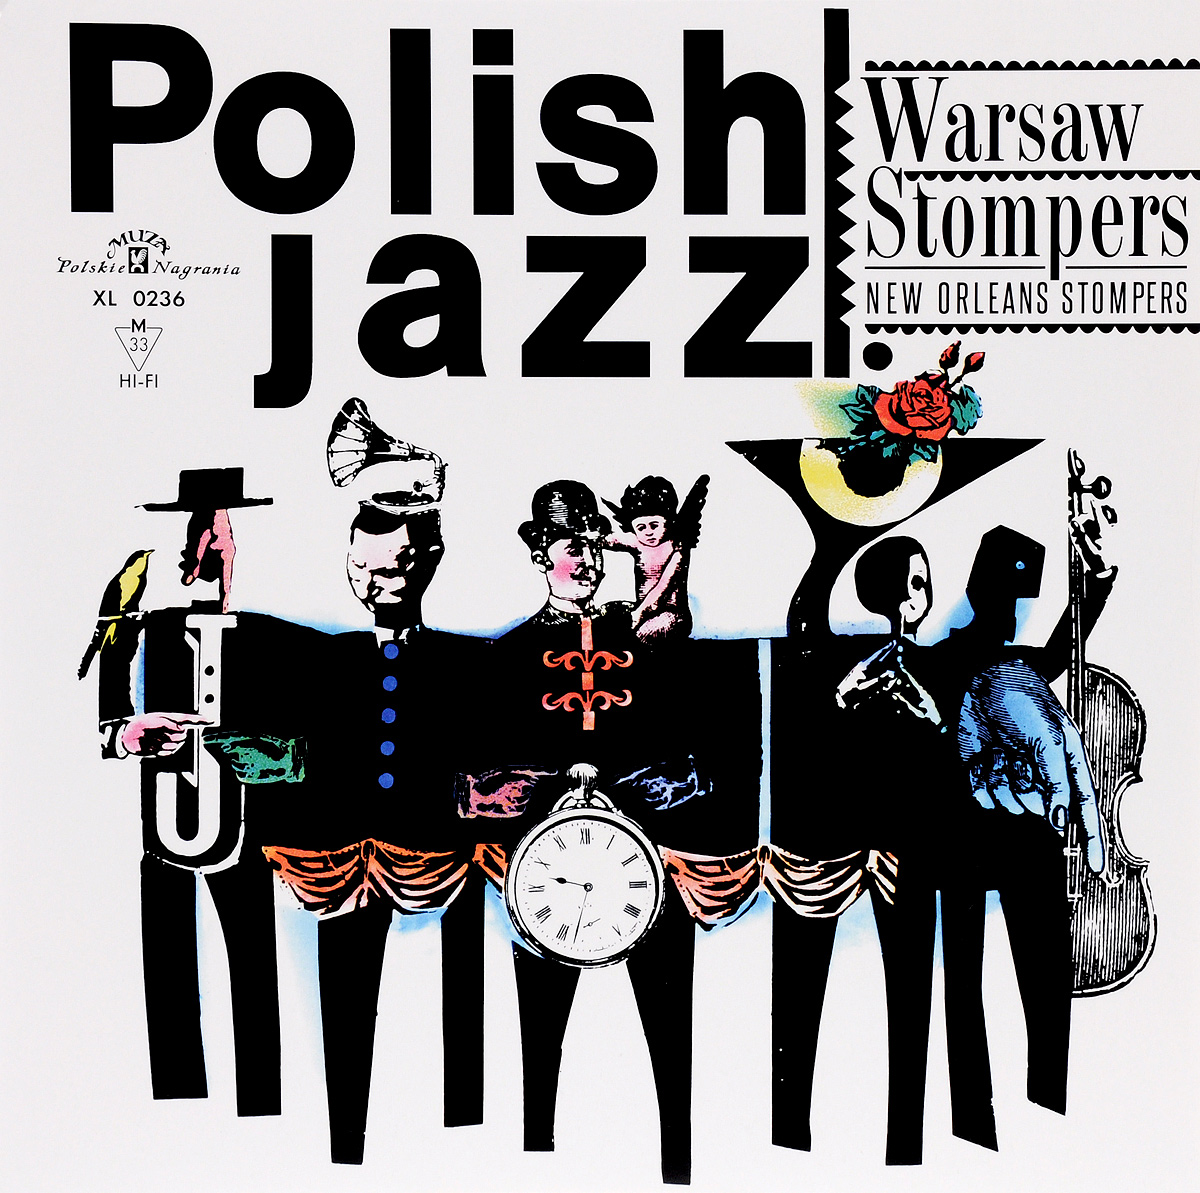 New Orleans Stompers Polish Jazz. New Orleans Stompers. Warsaw Stompers (LP) new